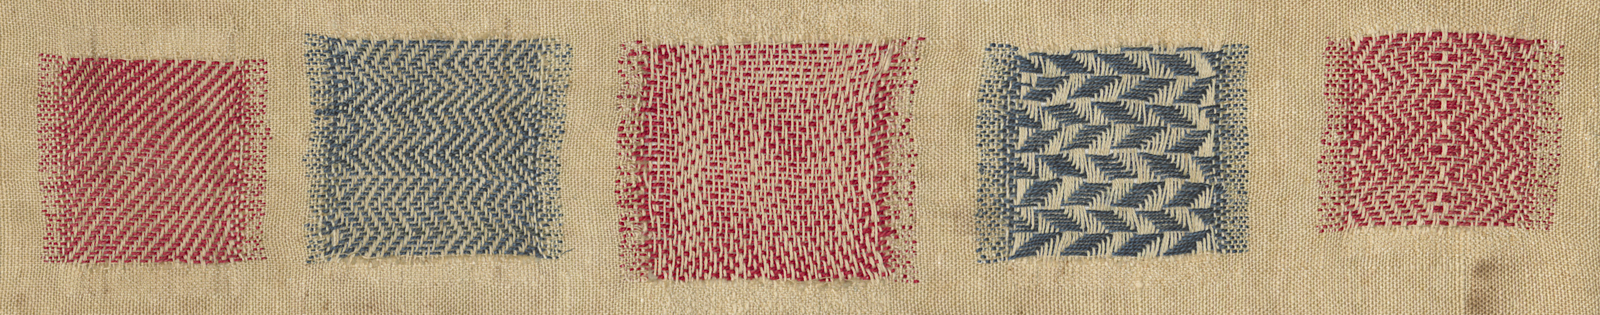 Detail of faux-weaving in the darning sampler, blue, red, and white.